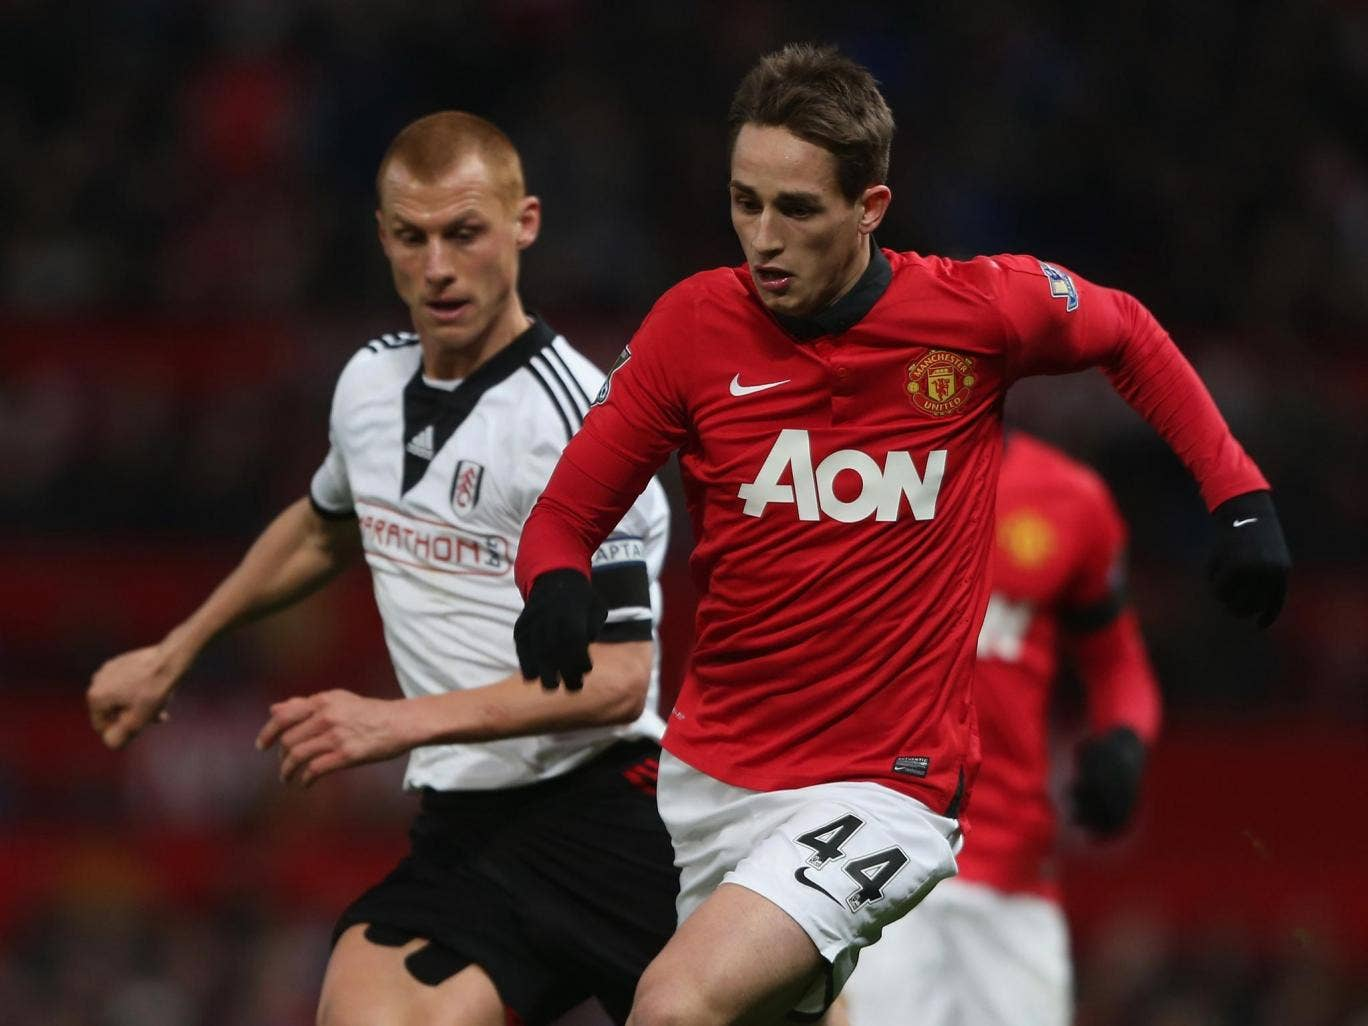 Adnan Januzaj could qualify to represent England in 2017 under Fifa's residency rule